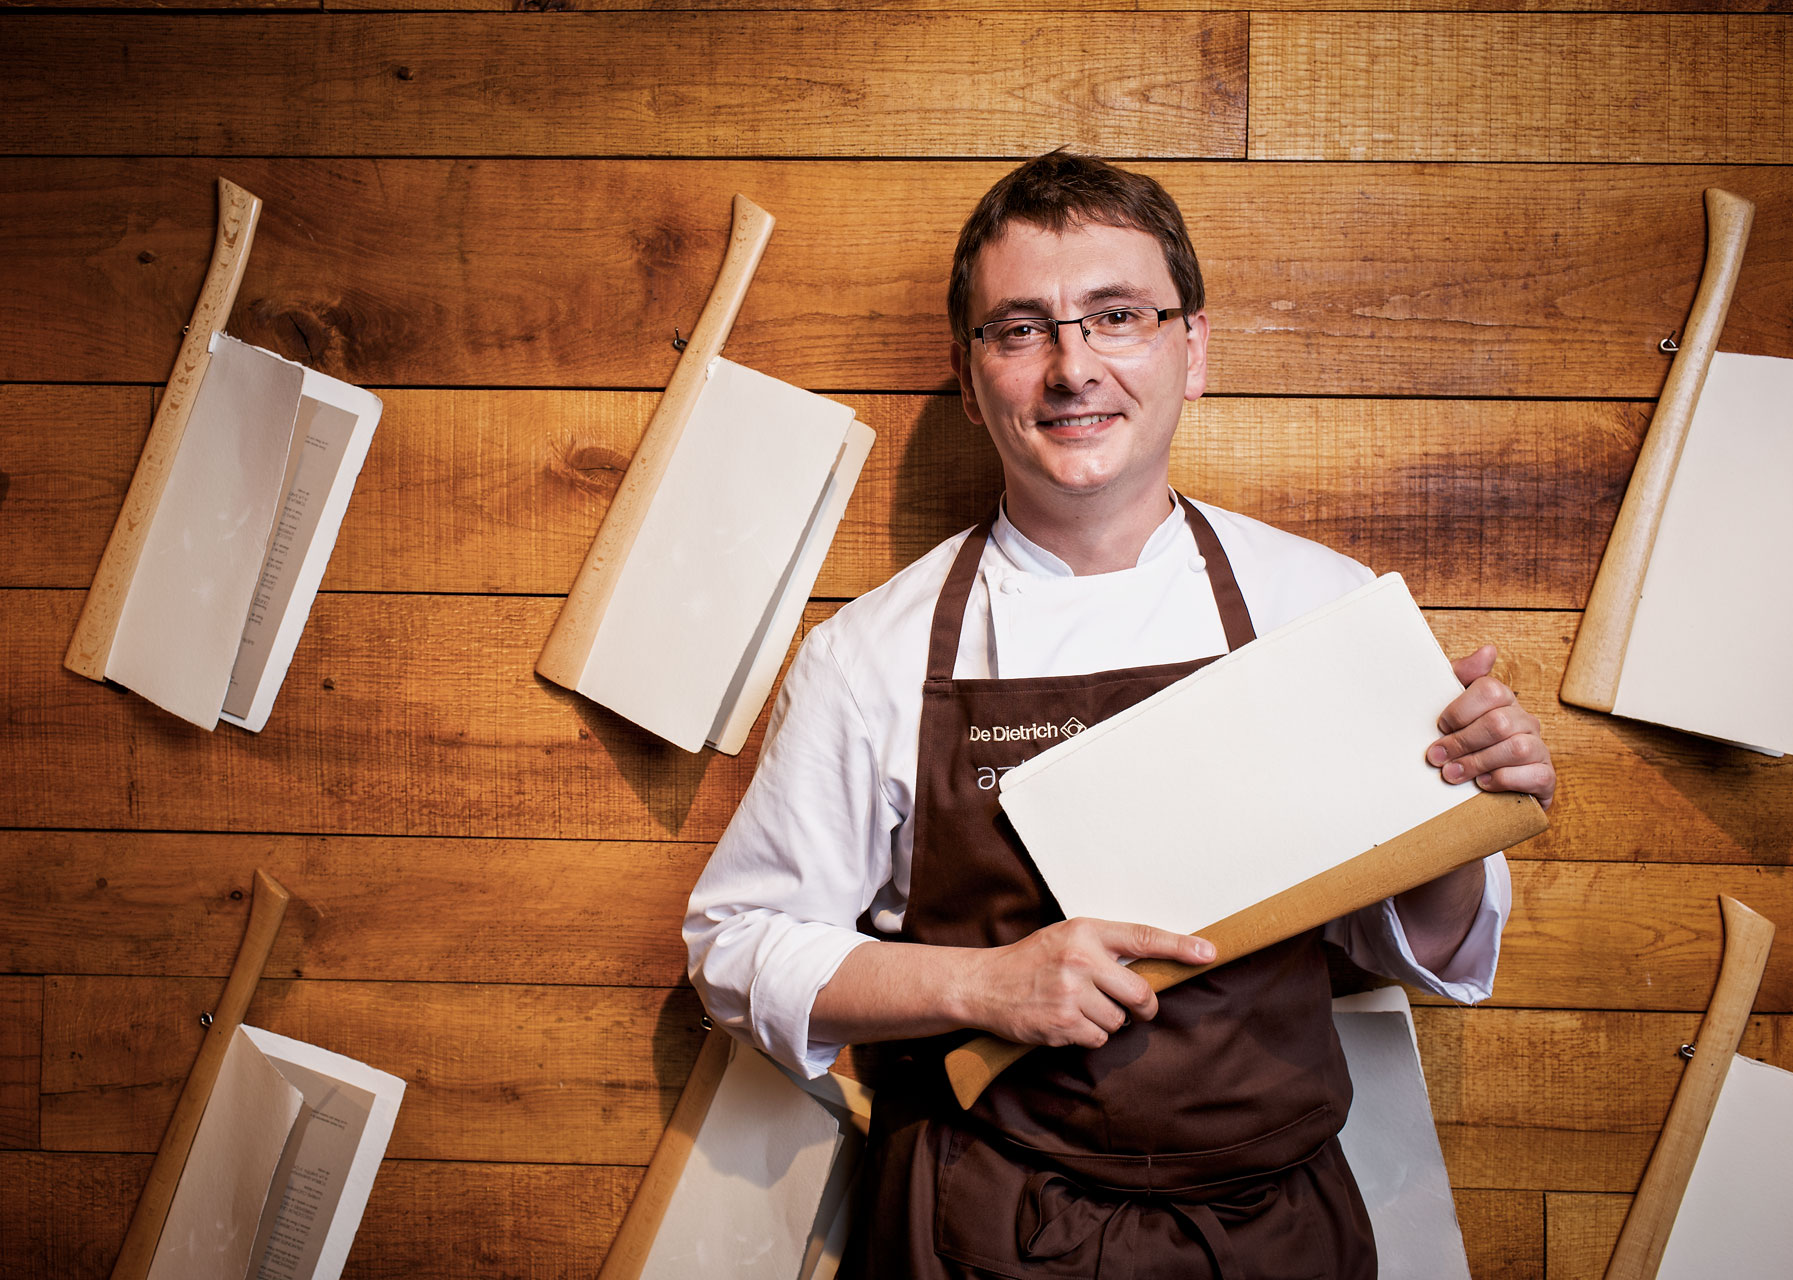 Basque chef Andoni Aduriz, Restaurant Mugaritz, for Der Feinschmecker